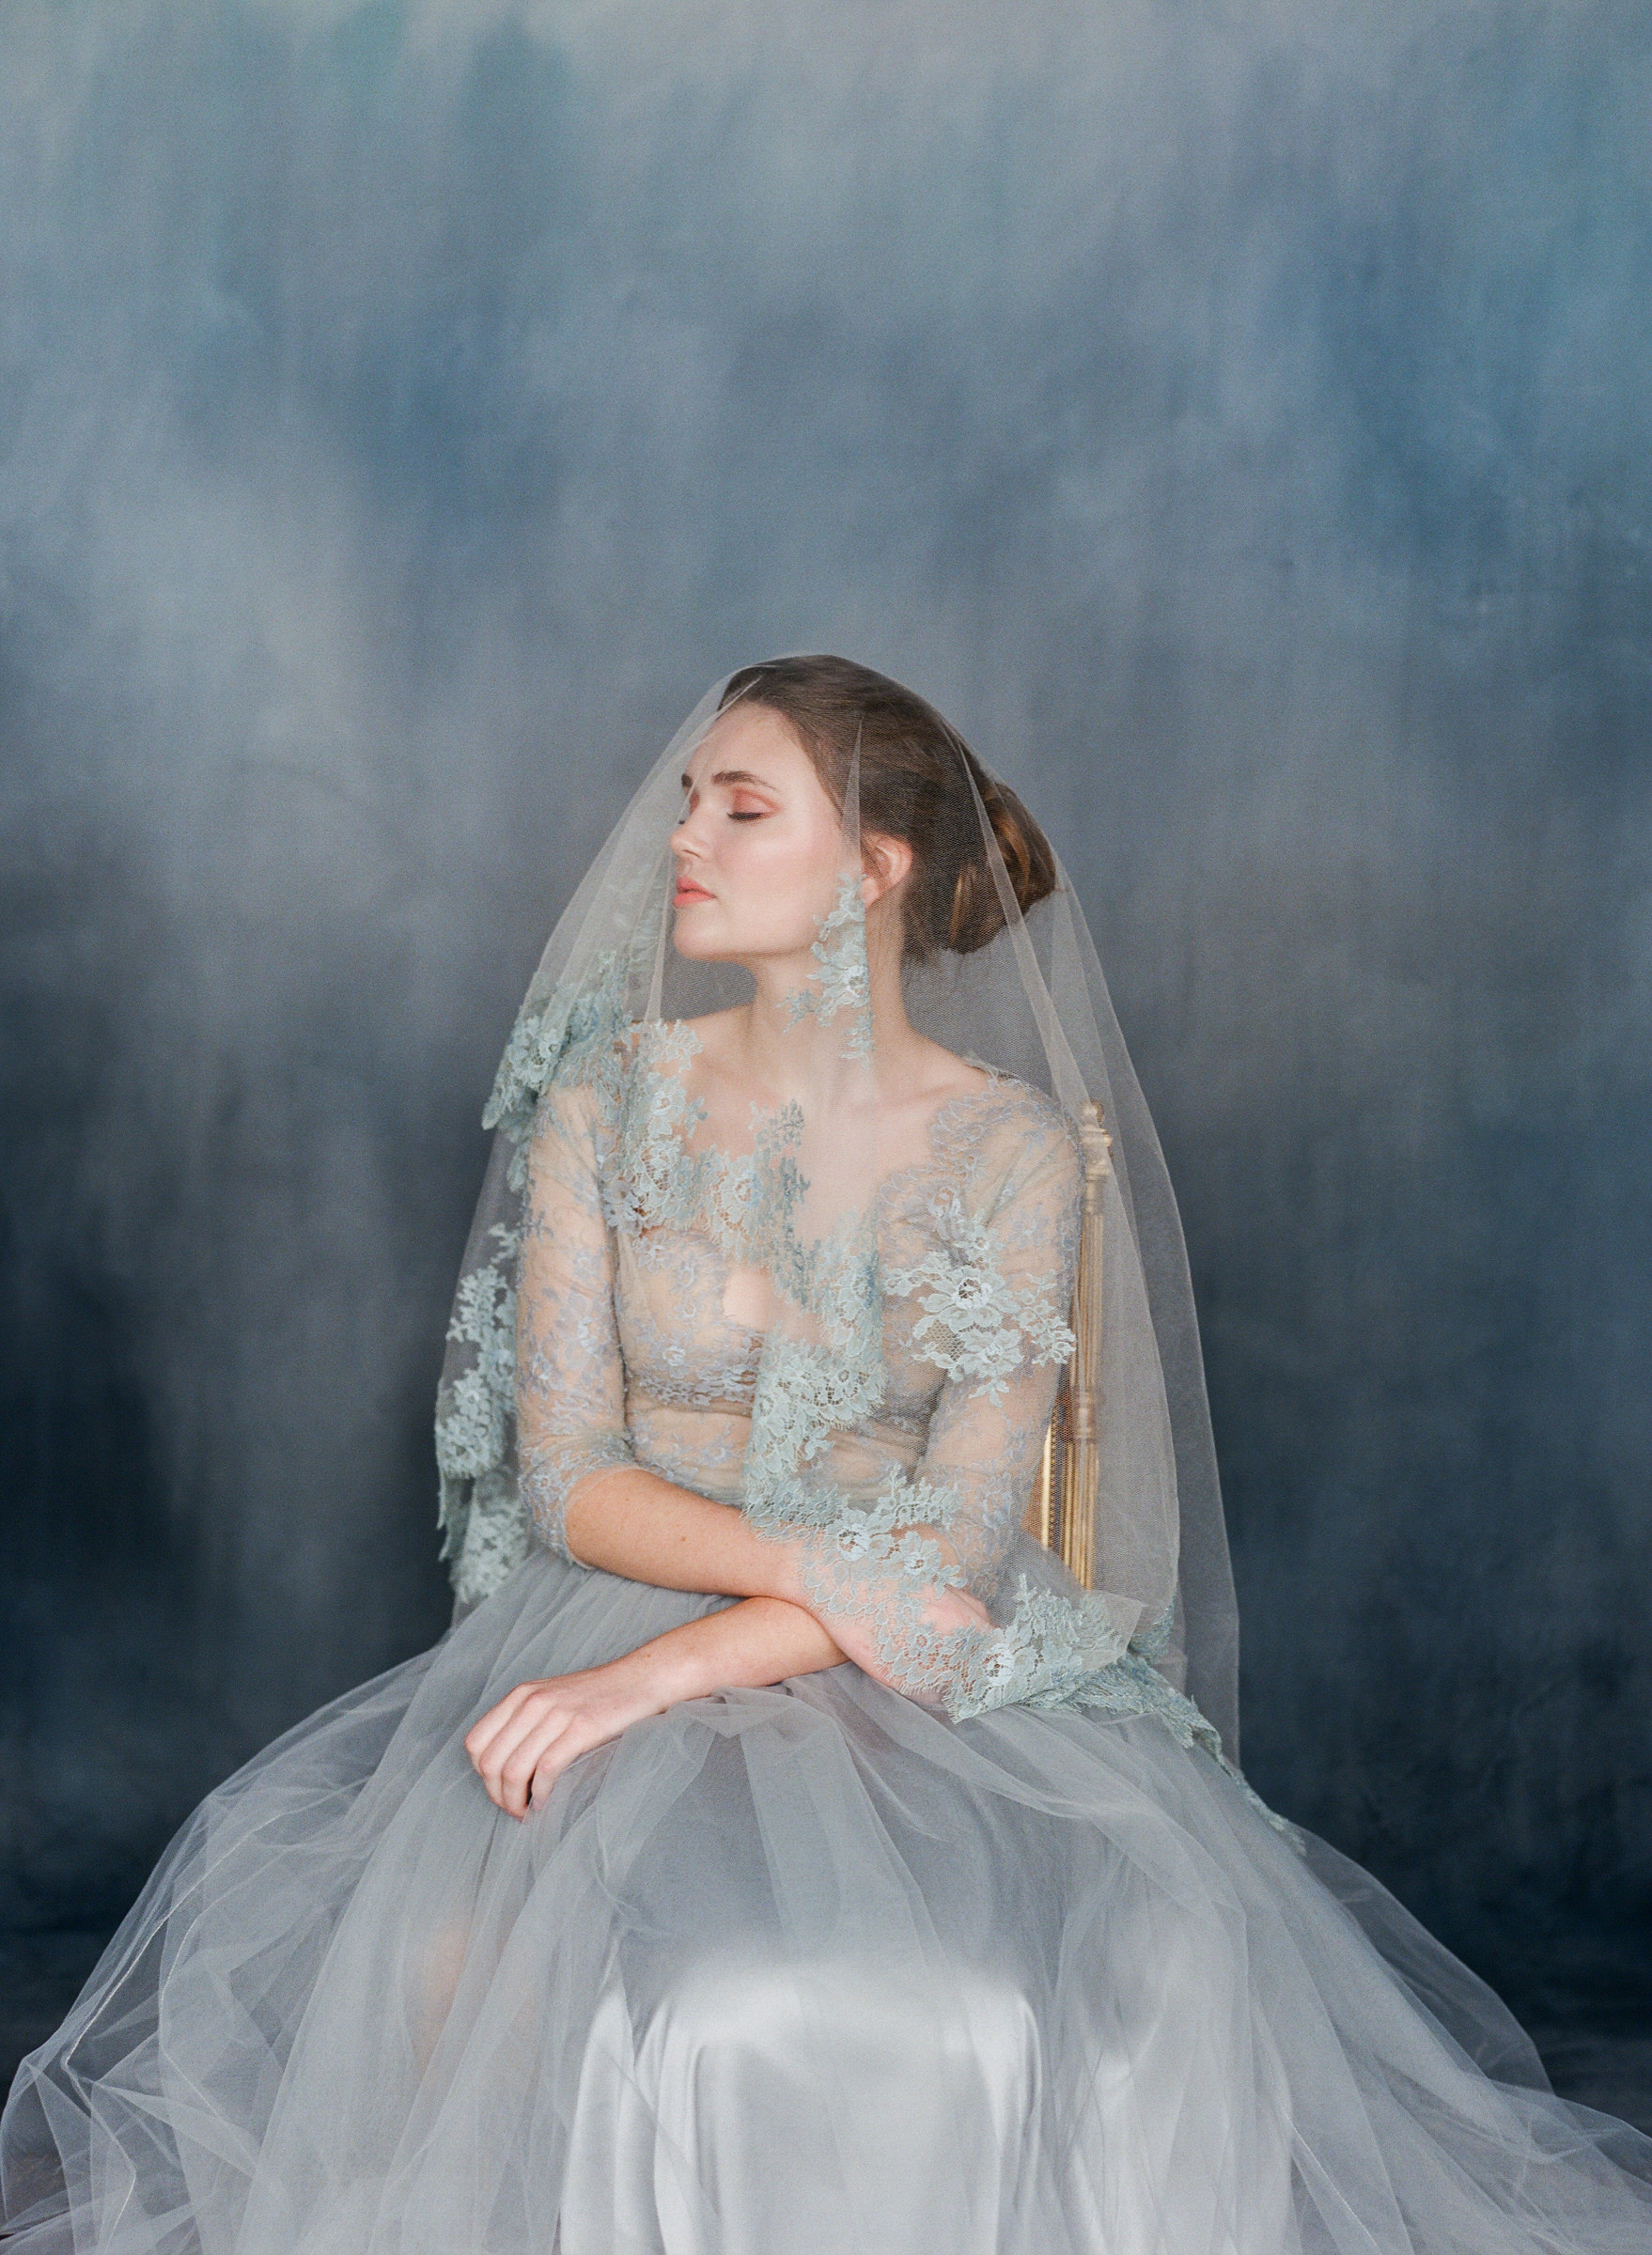 Classic portrait of bride in pewter mantilla veil and gown  - photo by Corbin Gurkin